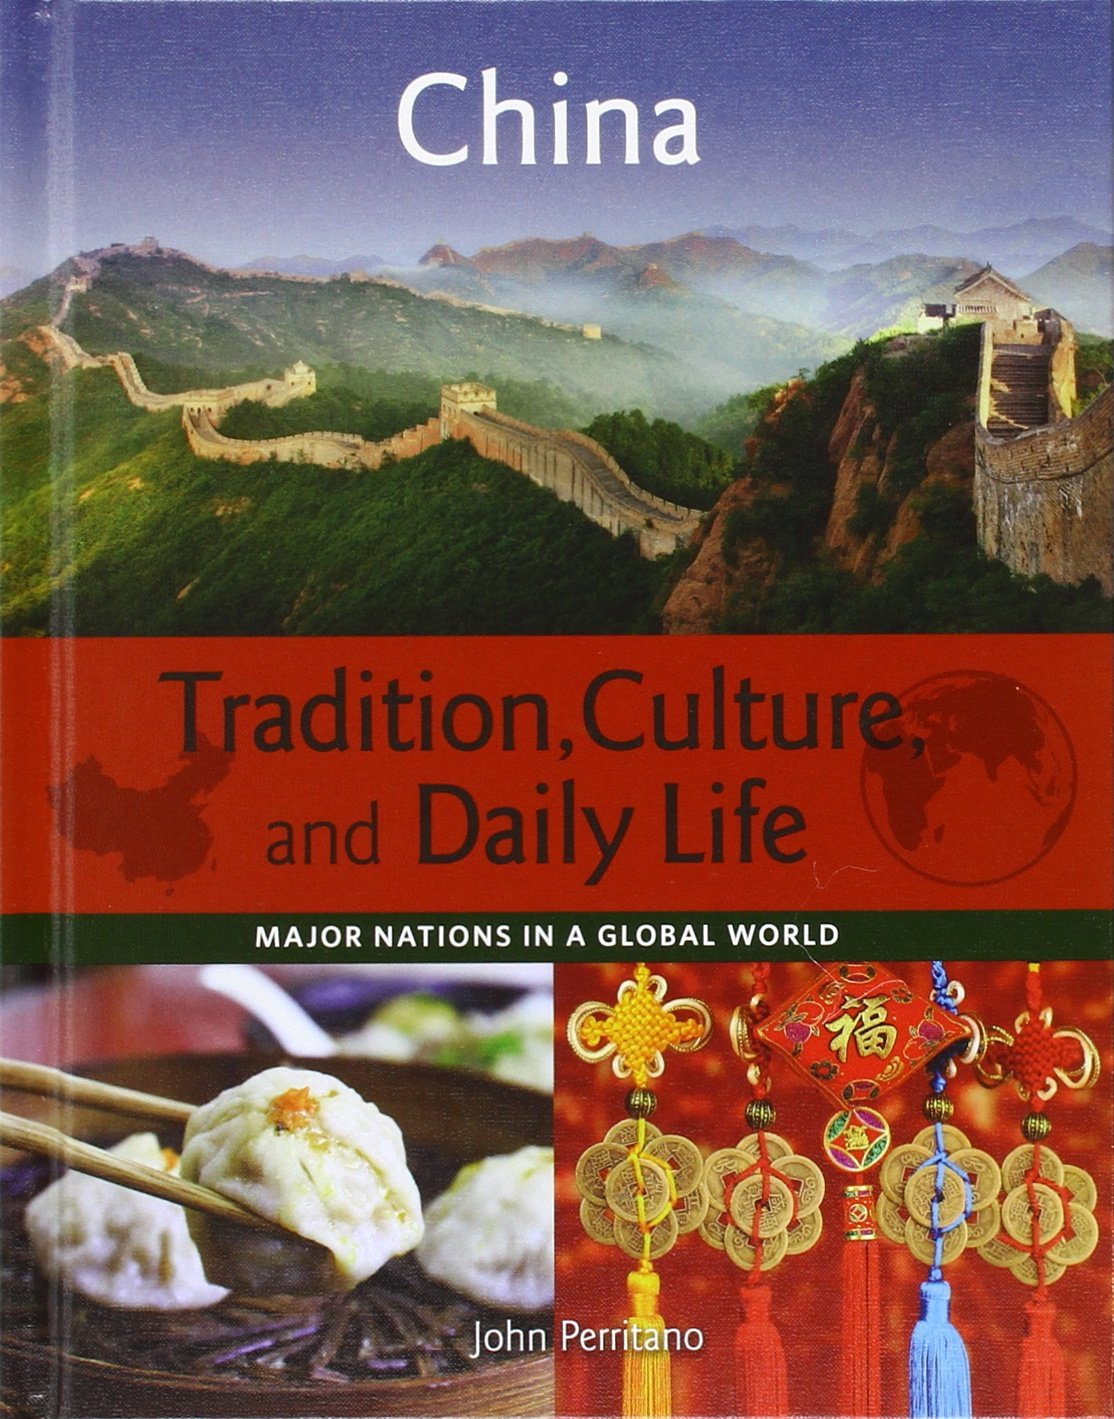 China (Major Nations in a Global World: Tradition, Culture, and Daily Life) ebook